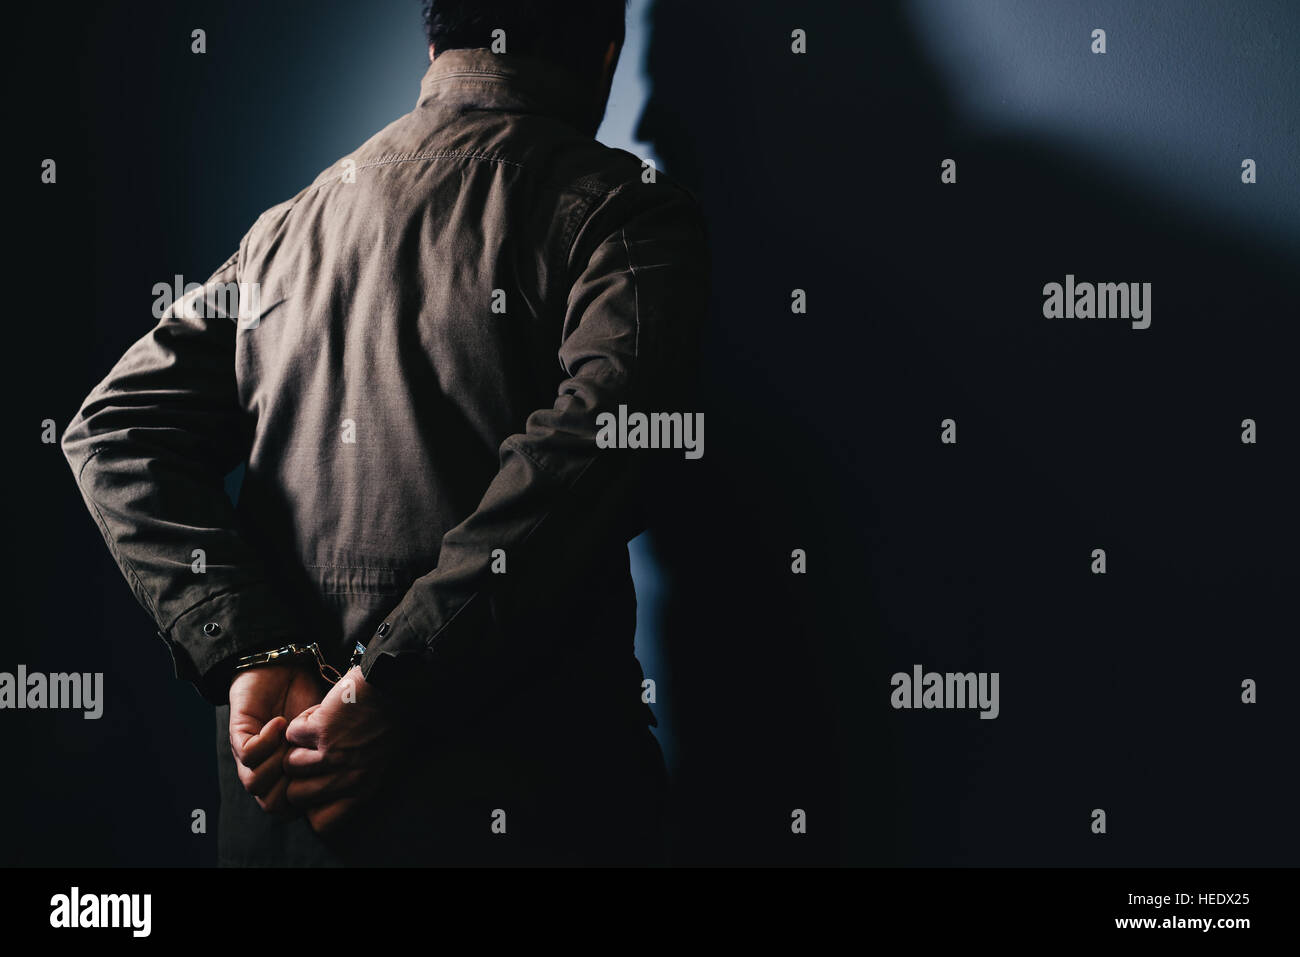 Arrested male criminal with handcuffs facing prison wall as copy space - Stock Image